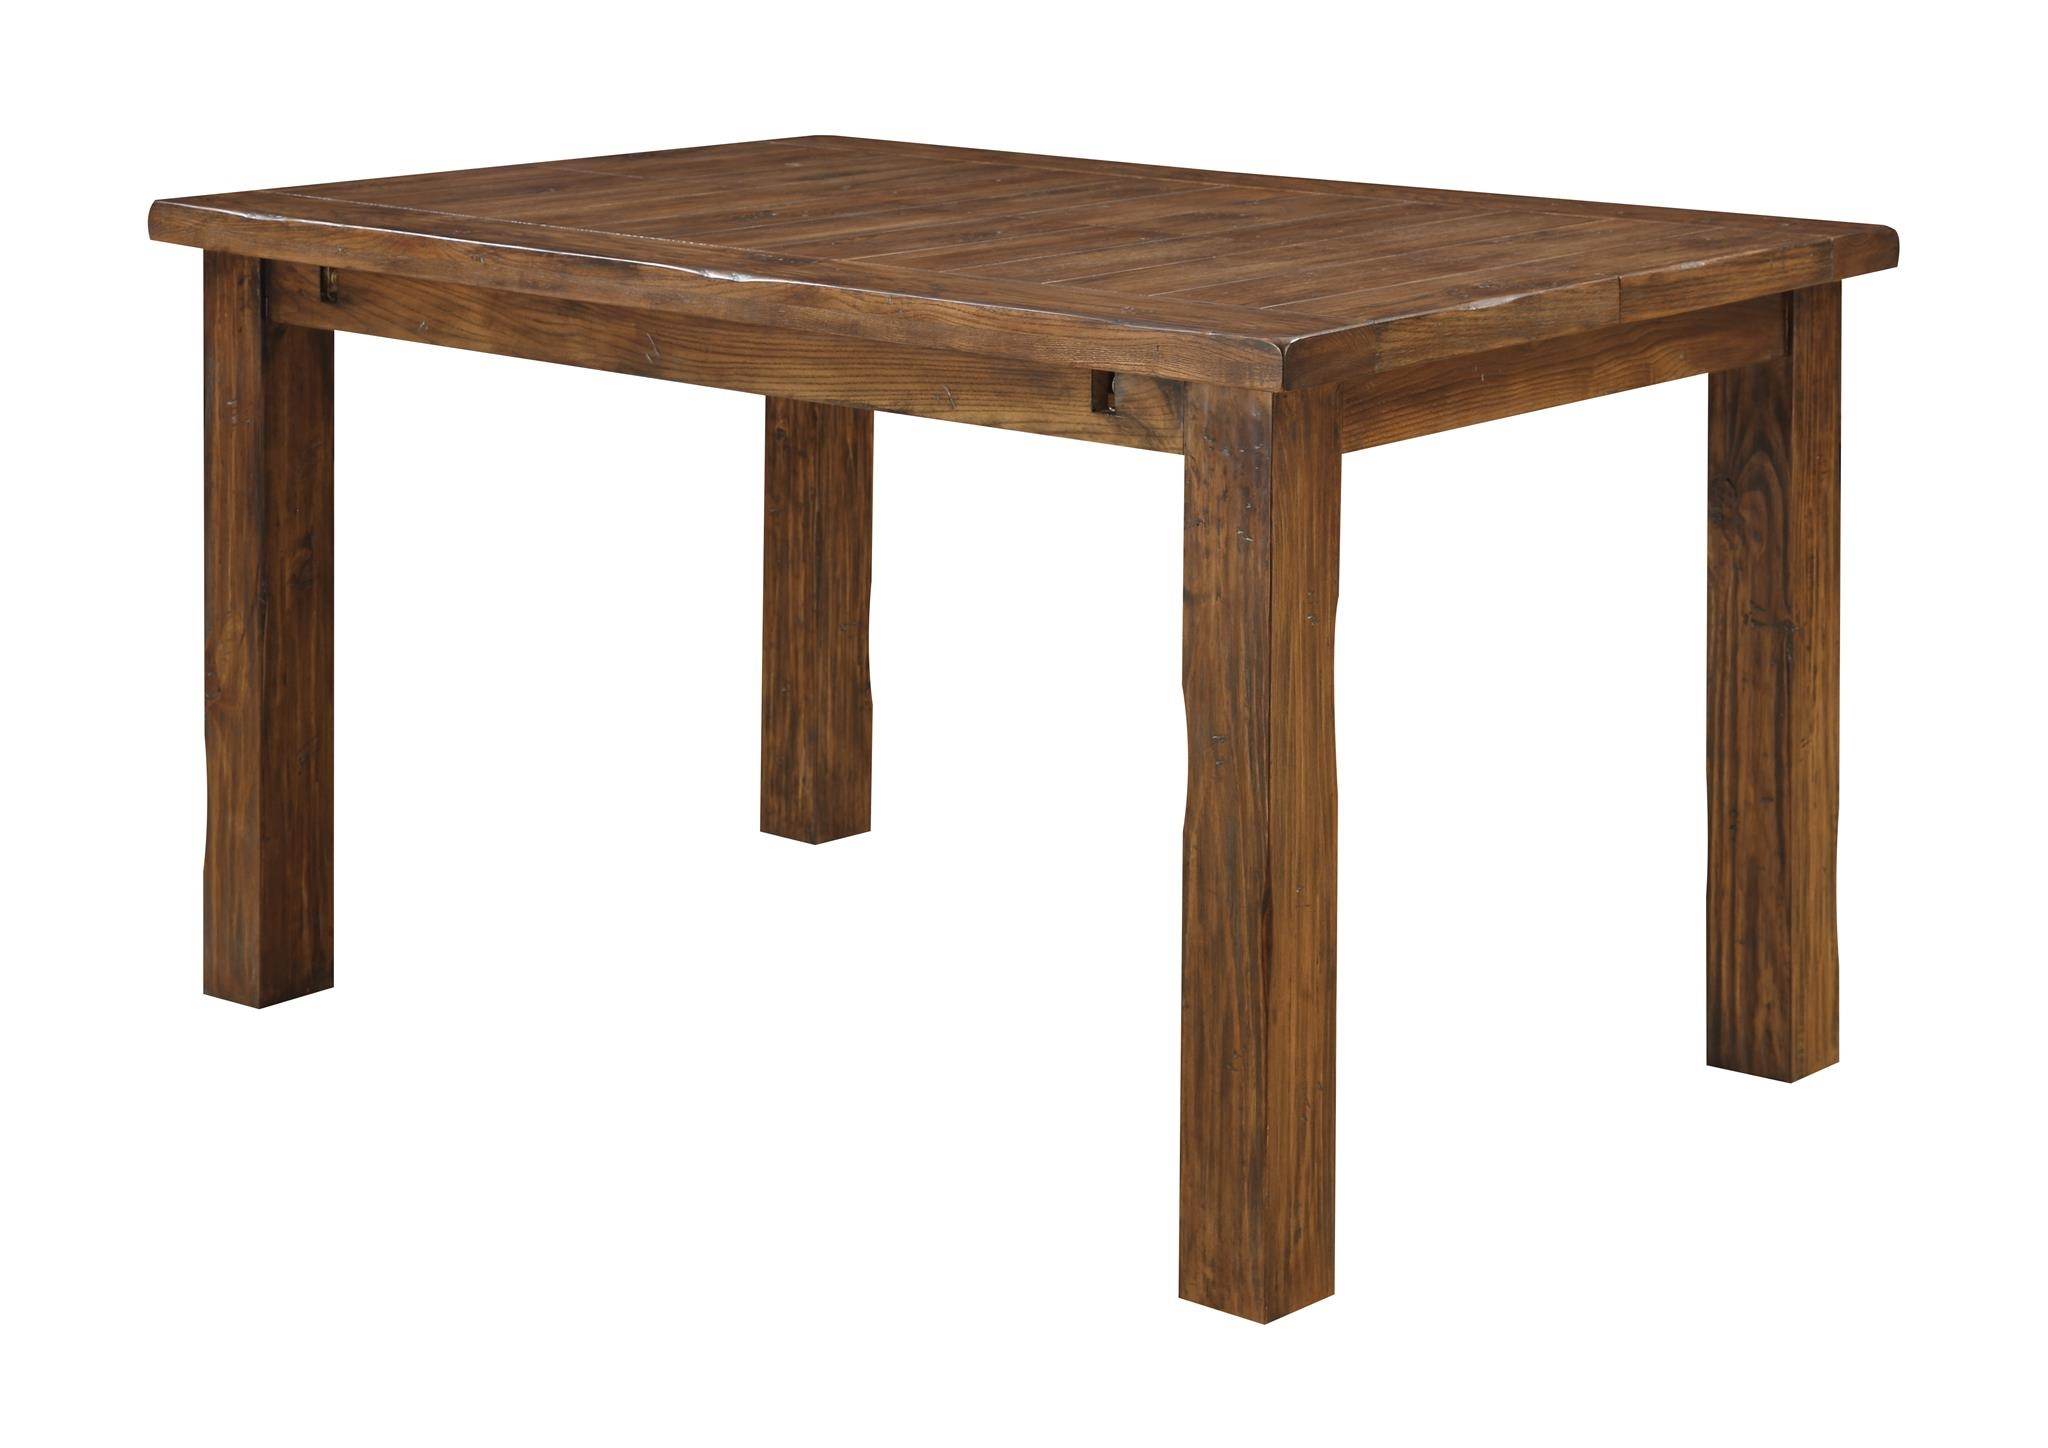 Chambers Creek Gathering Table by Emerald at Northeast Factory Direct